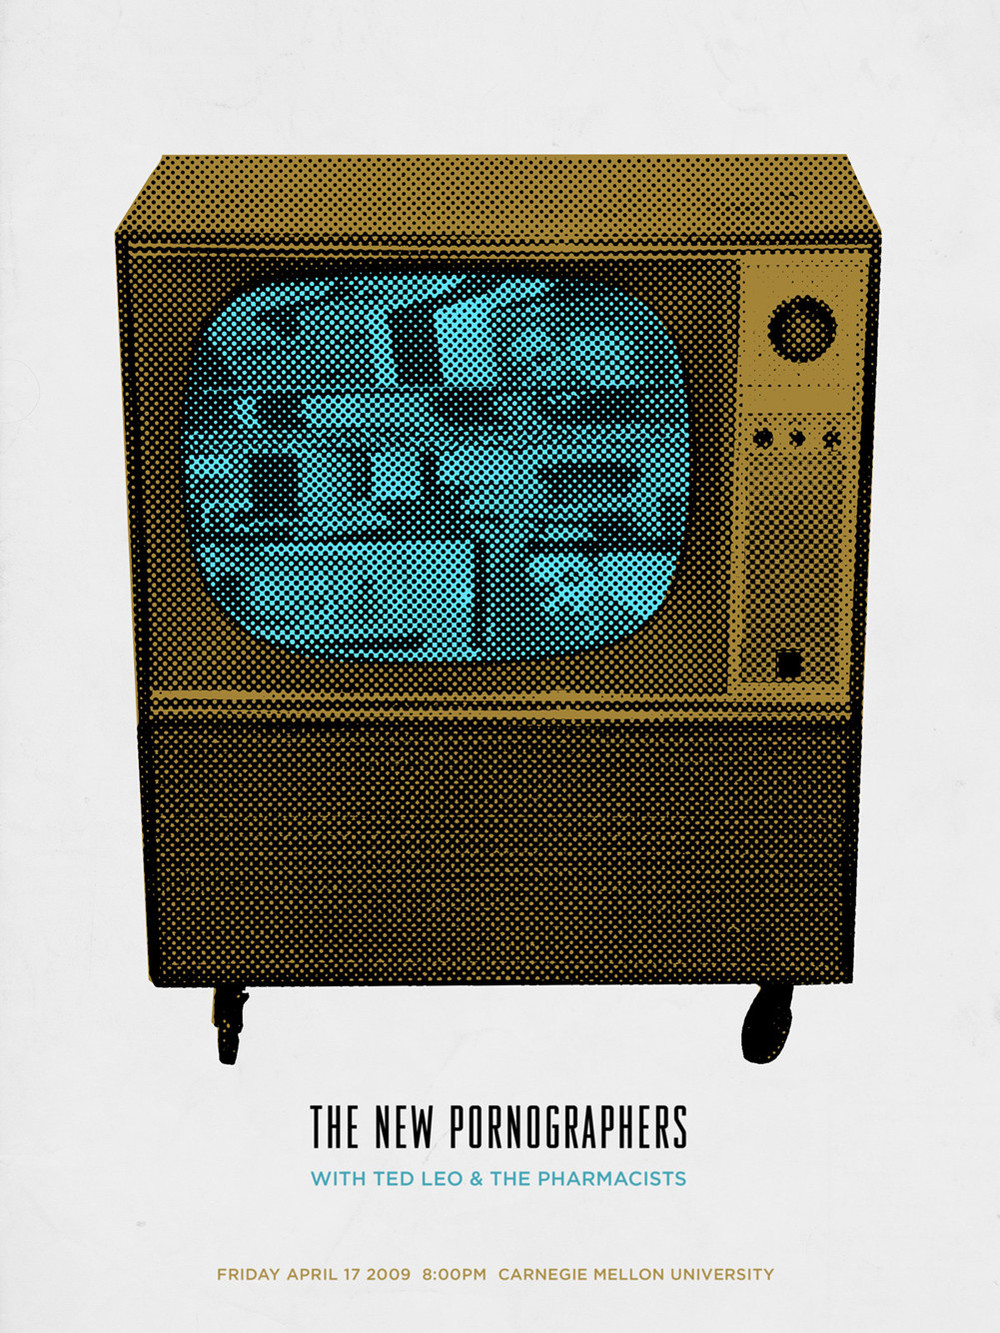 """2009:The New Pornographers are A.C. Newman, Blaine Thurier, Dan Bejar, John Collins, Kathryn Calder, Neko Case and Todd Fancey.Since their debut in 2000, The New Pornographers have released five studio albums including their most recent, Together (2010), of which, NPR Music praised, """"Unimpeachable pop gems…these are the songs of summer"""" while ELLE magazine asserted, """"The New Pornographers have done what all great bands do: Evolve…unpretentious and unbelievably infectious"""" and the Associated Press heralded, """"…Together finds them at their peak. The melding of Newman's voice with Neko Case and Kathryn Calder is endlessly inventive, weaving in and out of the nervous-sounding rhythm that is the band's calling card. The first four songs are what the Electric Light Orchestra meant to achieve but never quite did."""""""